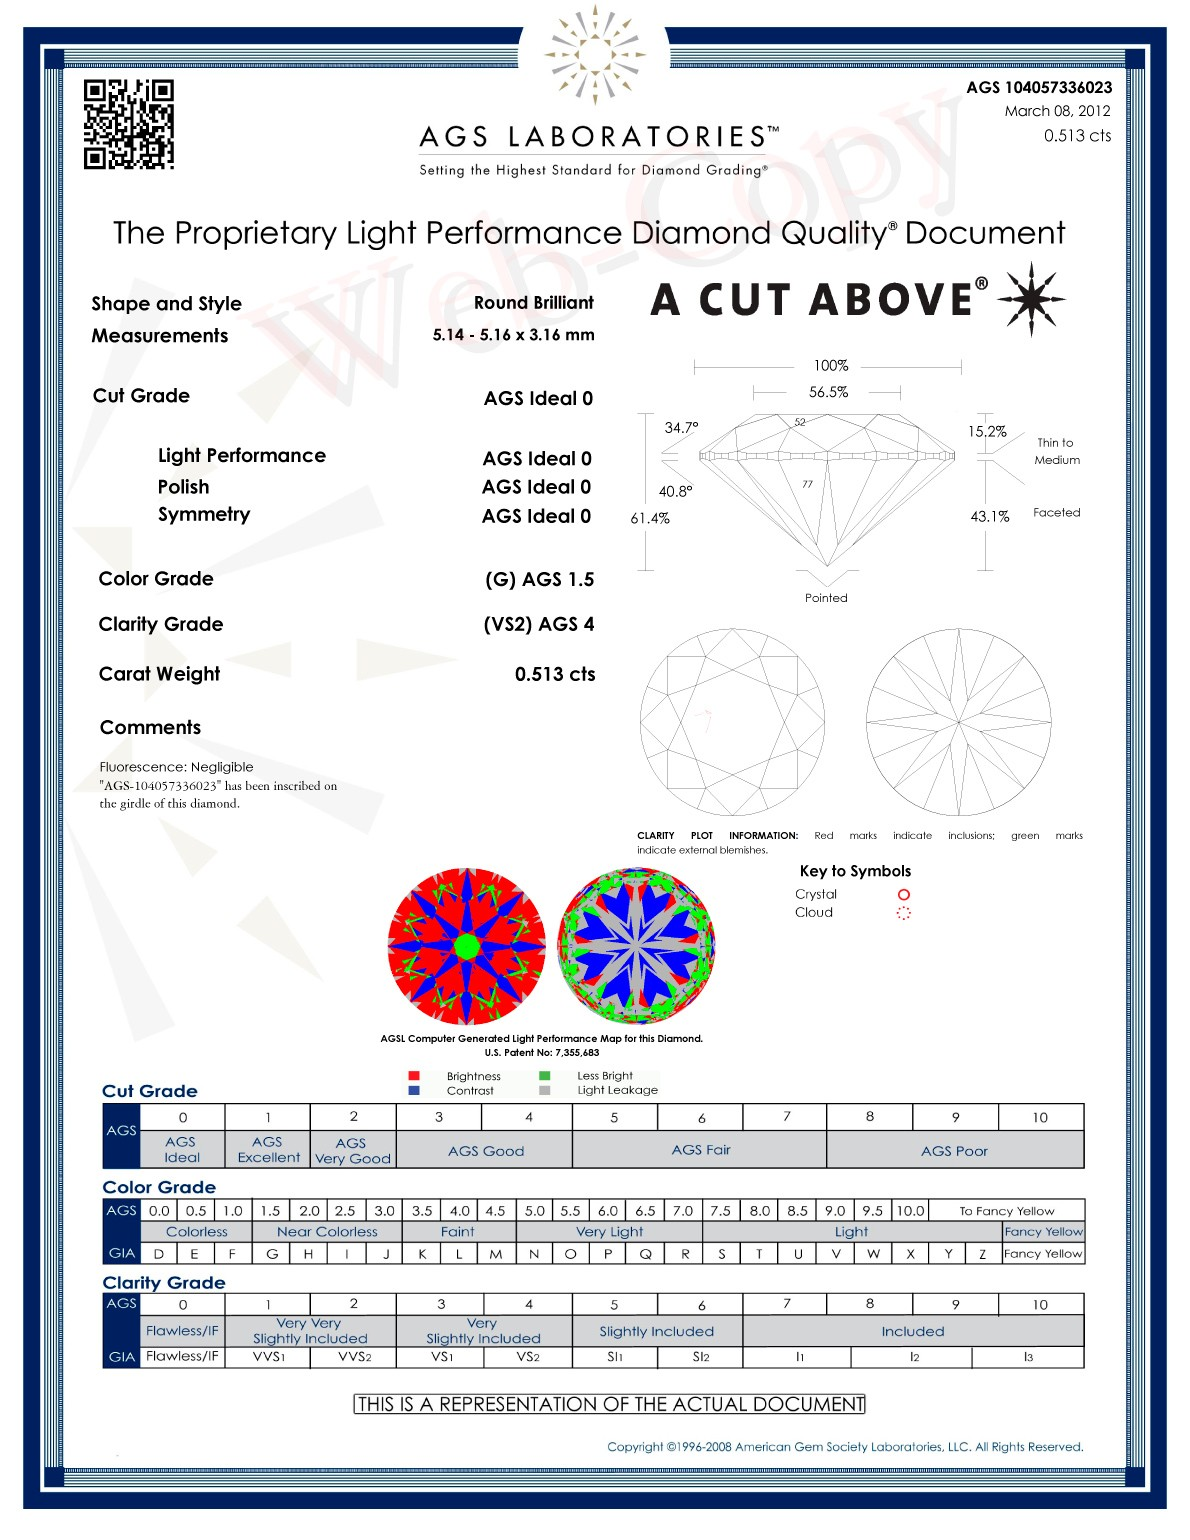 Whiteflash Announces New Feature On Ags Laboratory Diamond Reports